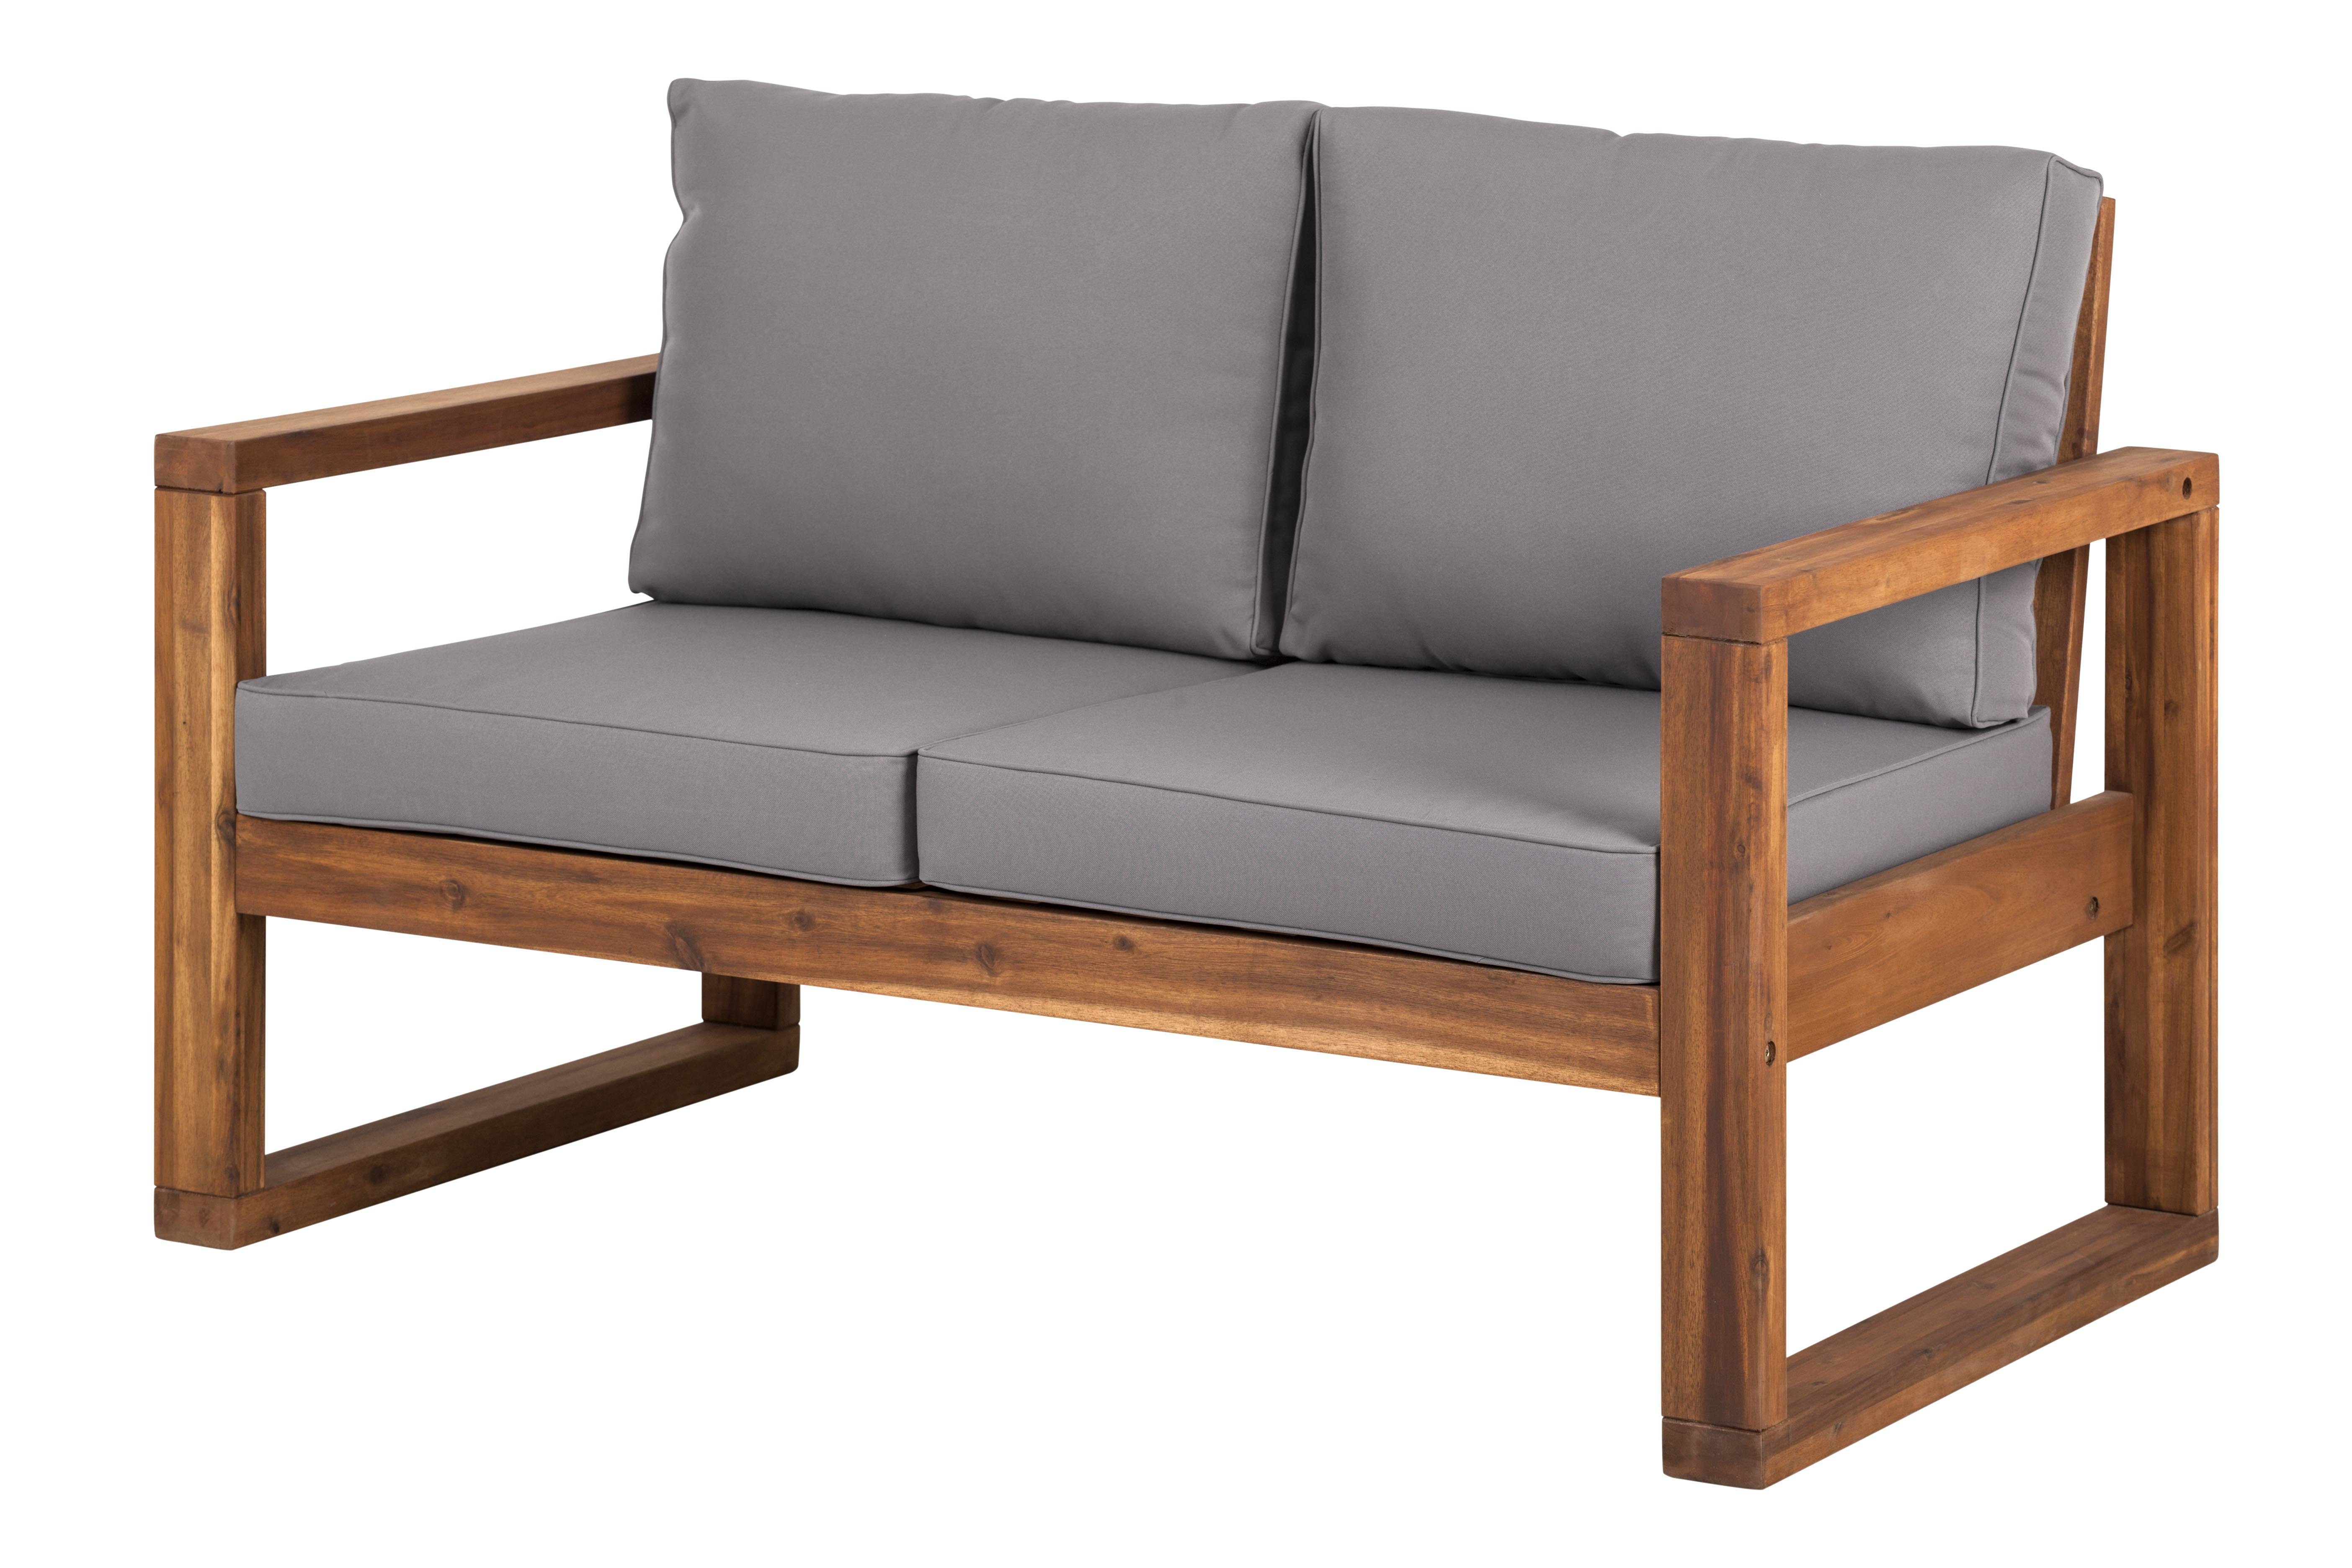 Lyall Loveseat With Cushion In Famous Lyall Loveseats With Cushion (View 6 of 20)